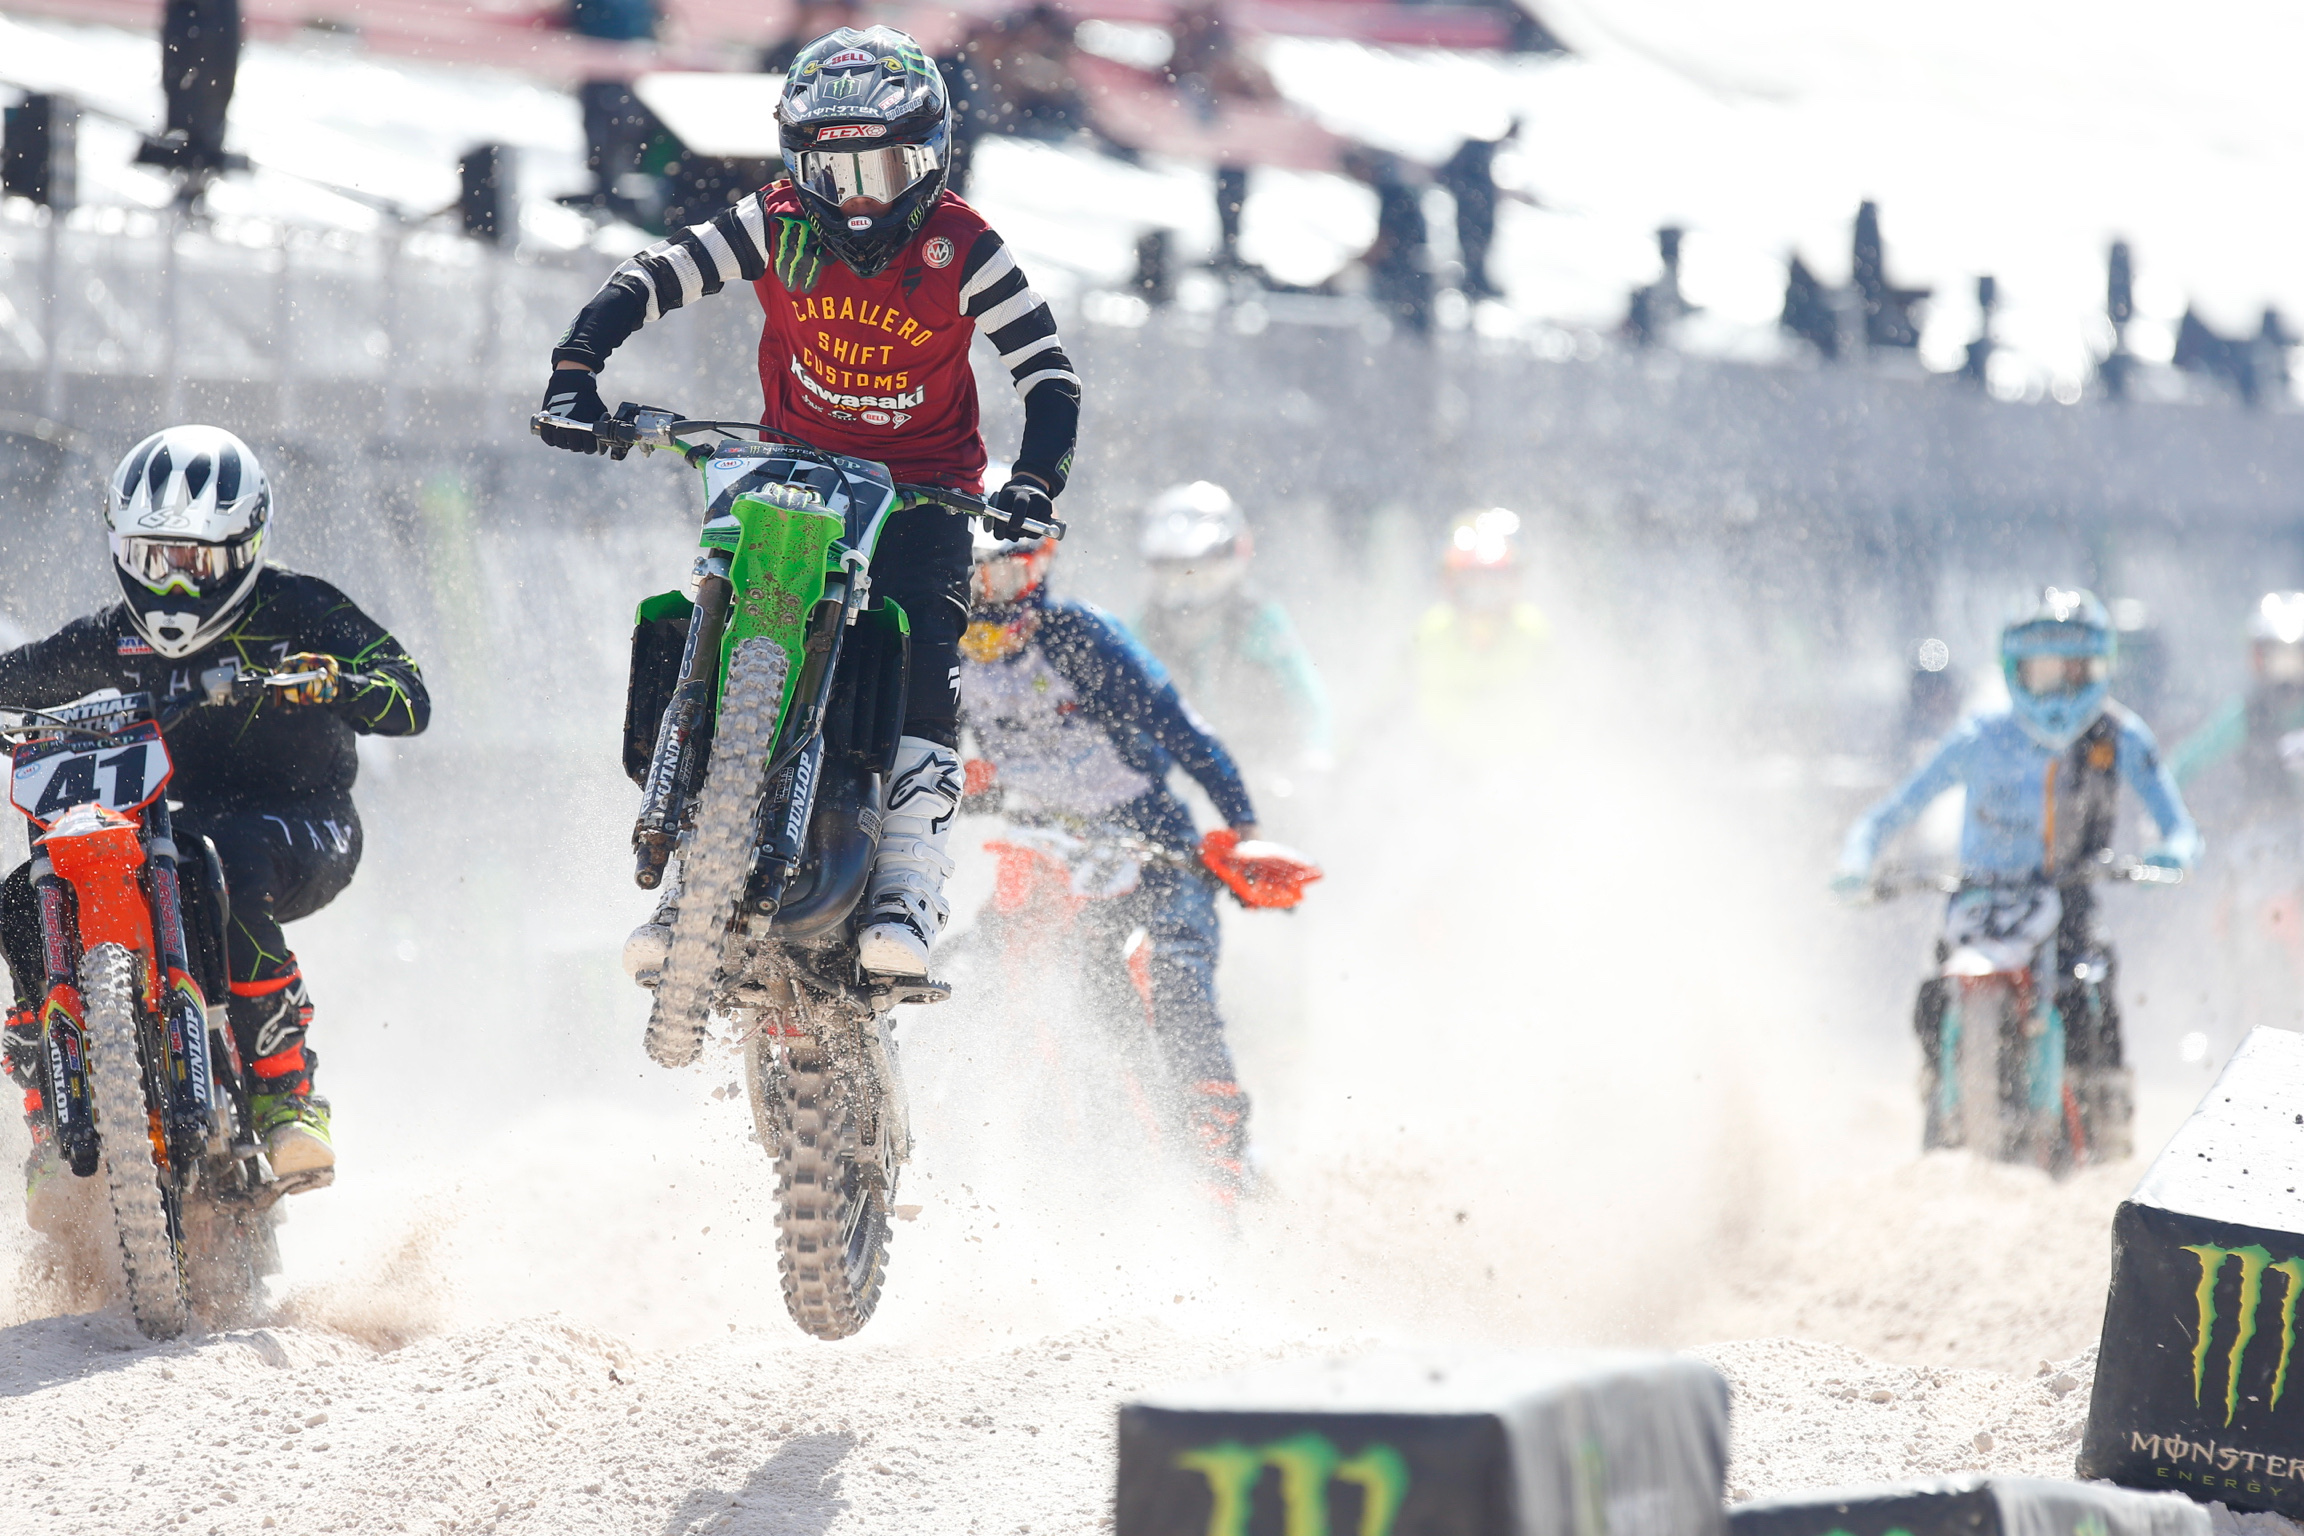 Chance Hymas led Team Green by finishing third place in his first Monster Energy Cup